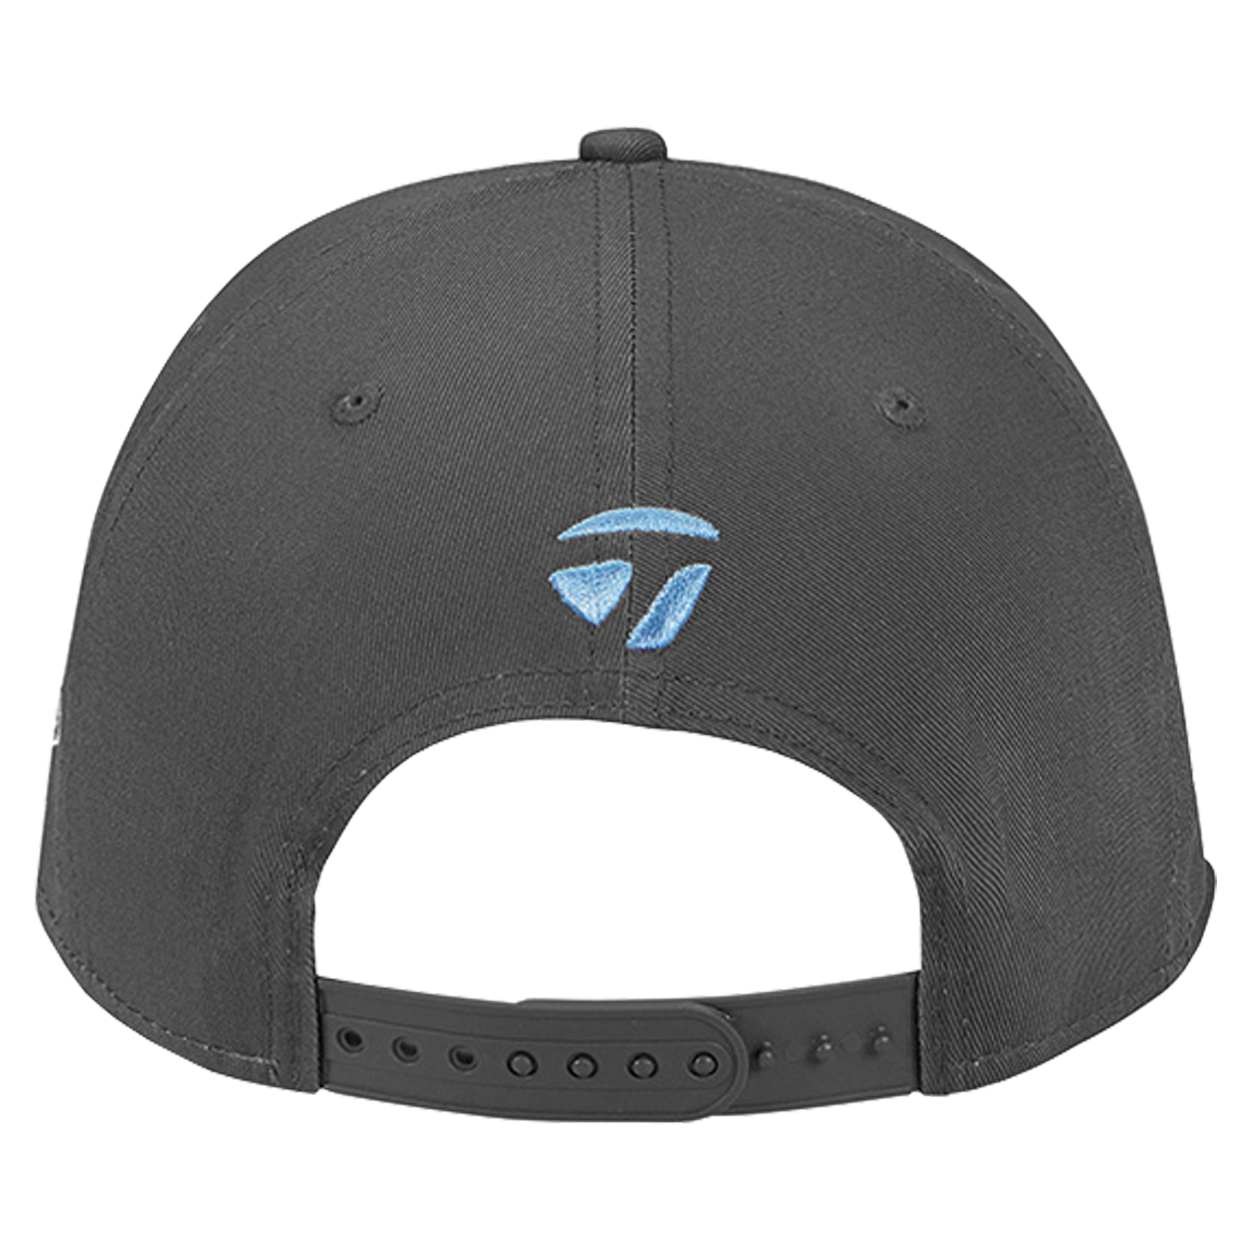 0685b02e6 Details about TaylorMade Golf Life Style 9Fifty Snap Back Adjustable Hat,  Brand New